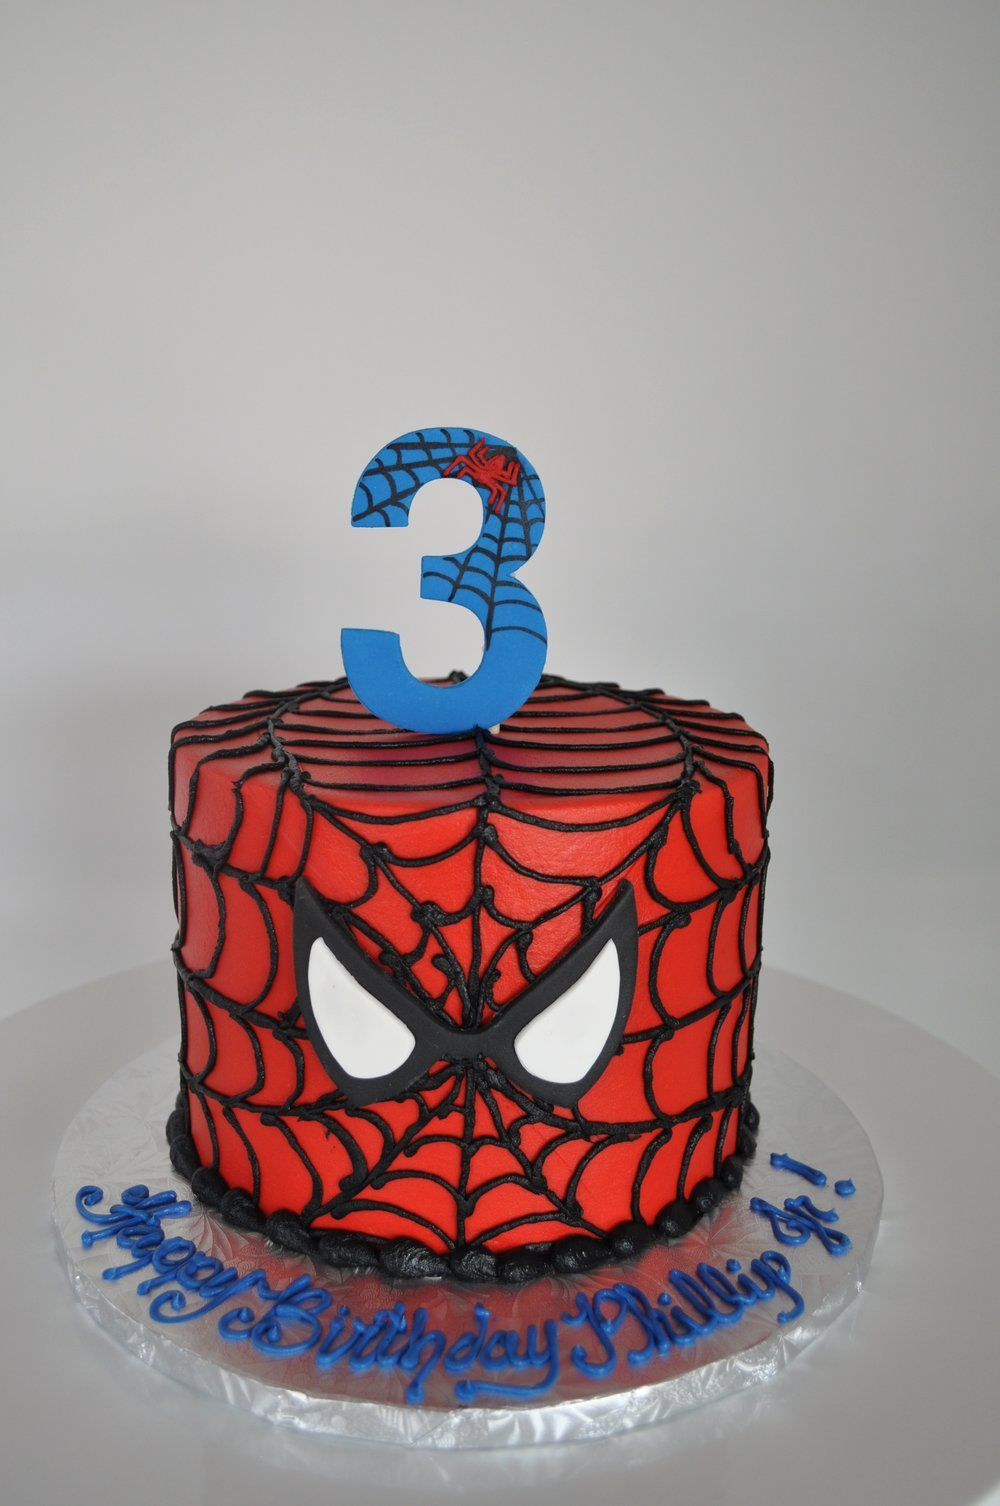 30 Amazing Image Of Spider Man Birthday Cakes Sugar Bee Sweets Bakery Dallas Fort Worth Wedding Cake